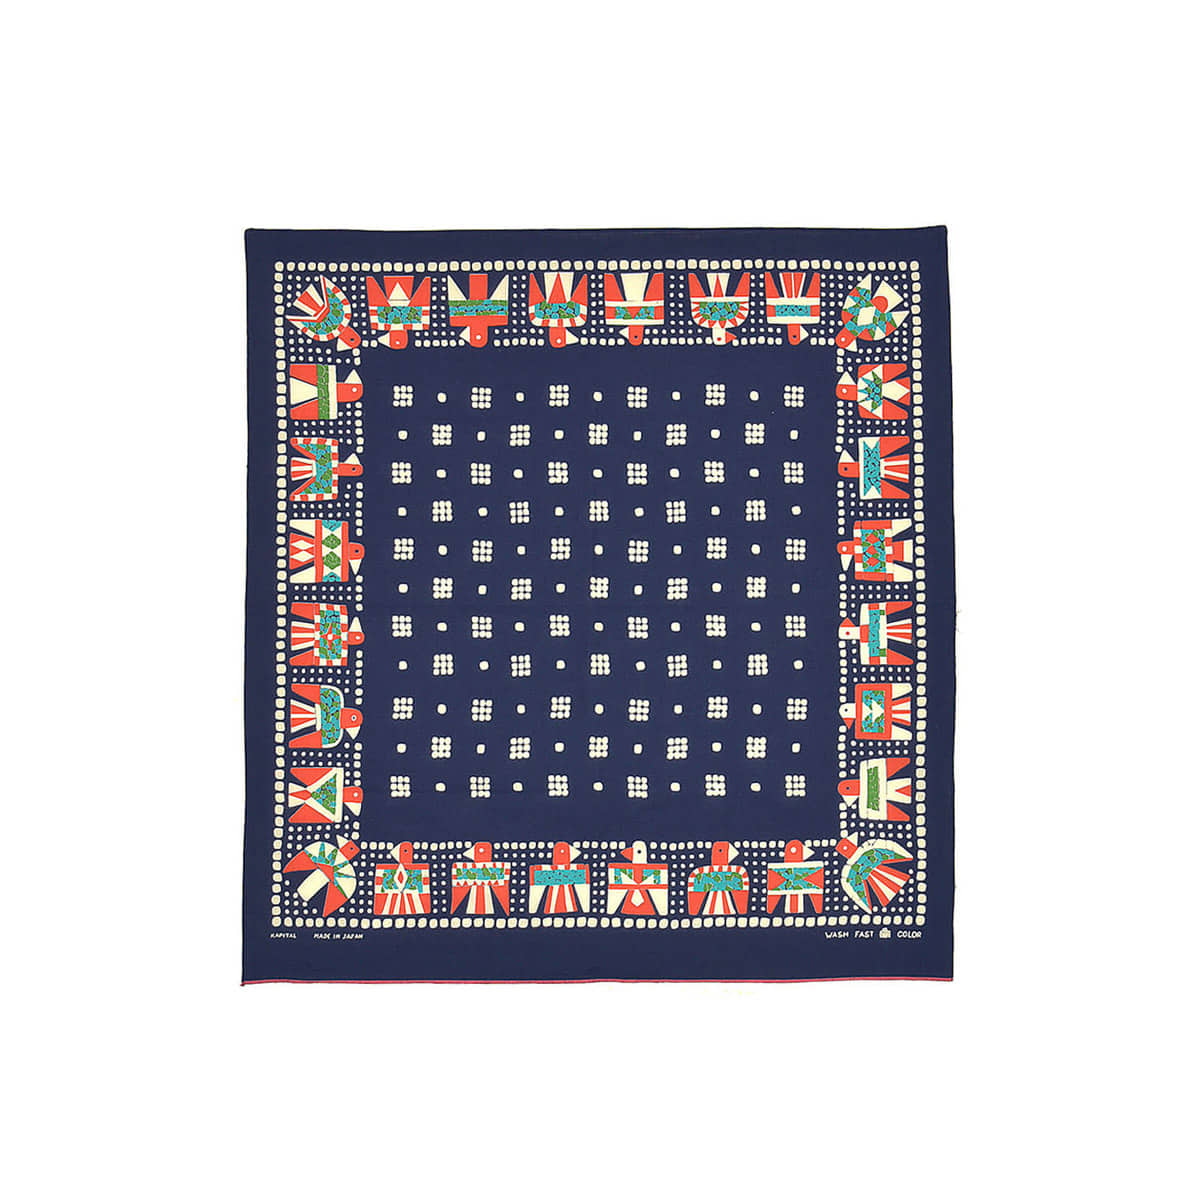 [KAPITAL] FAST COLOR SELVEDGE BANDANA (THUNDERBIRD) 'NAVY'